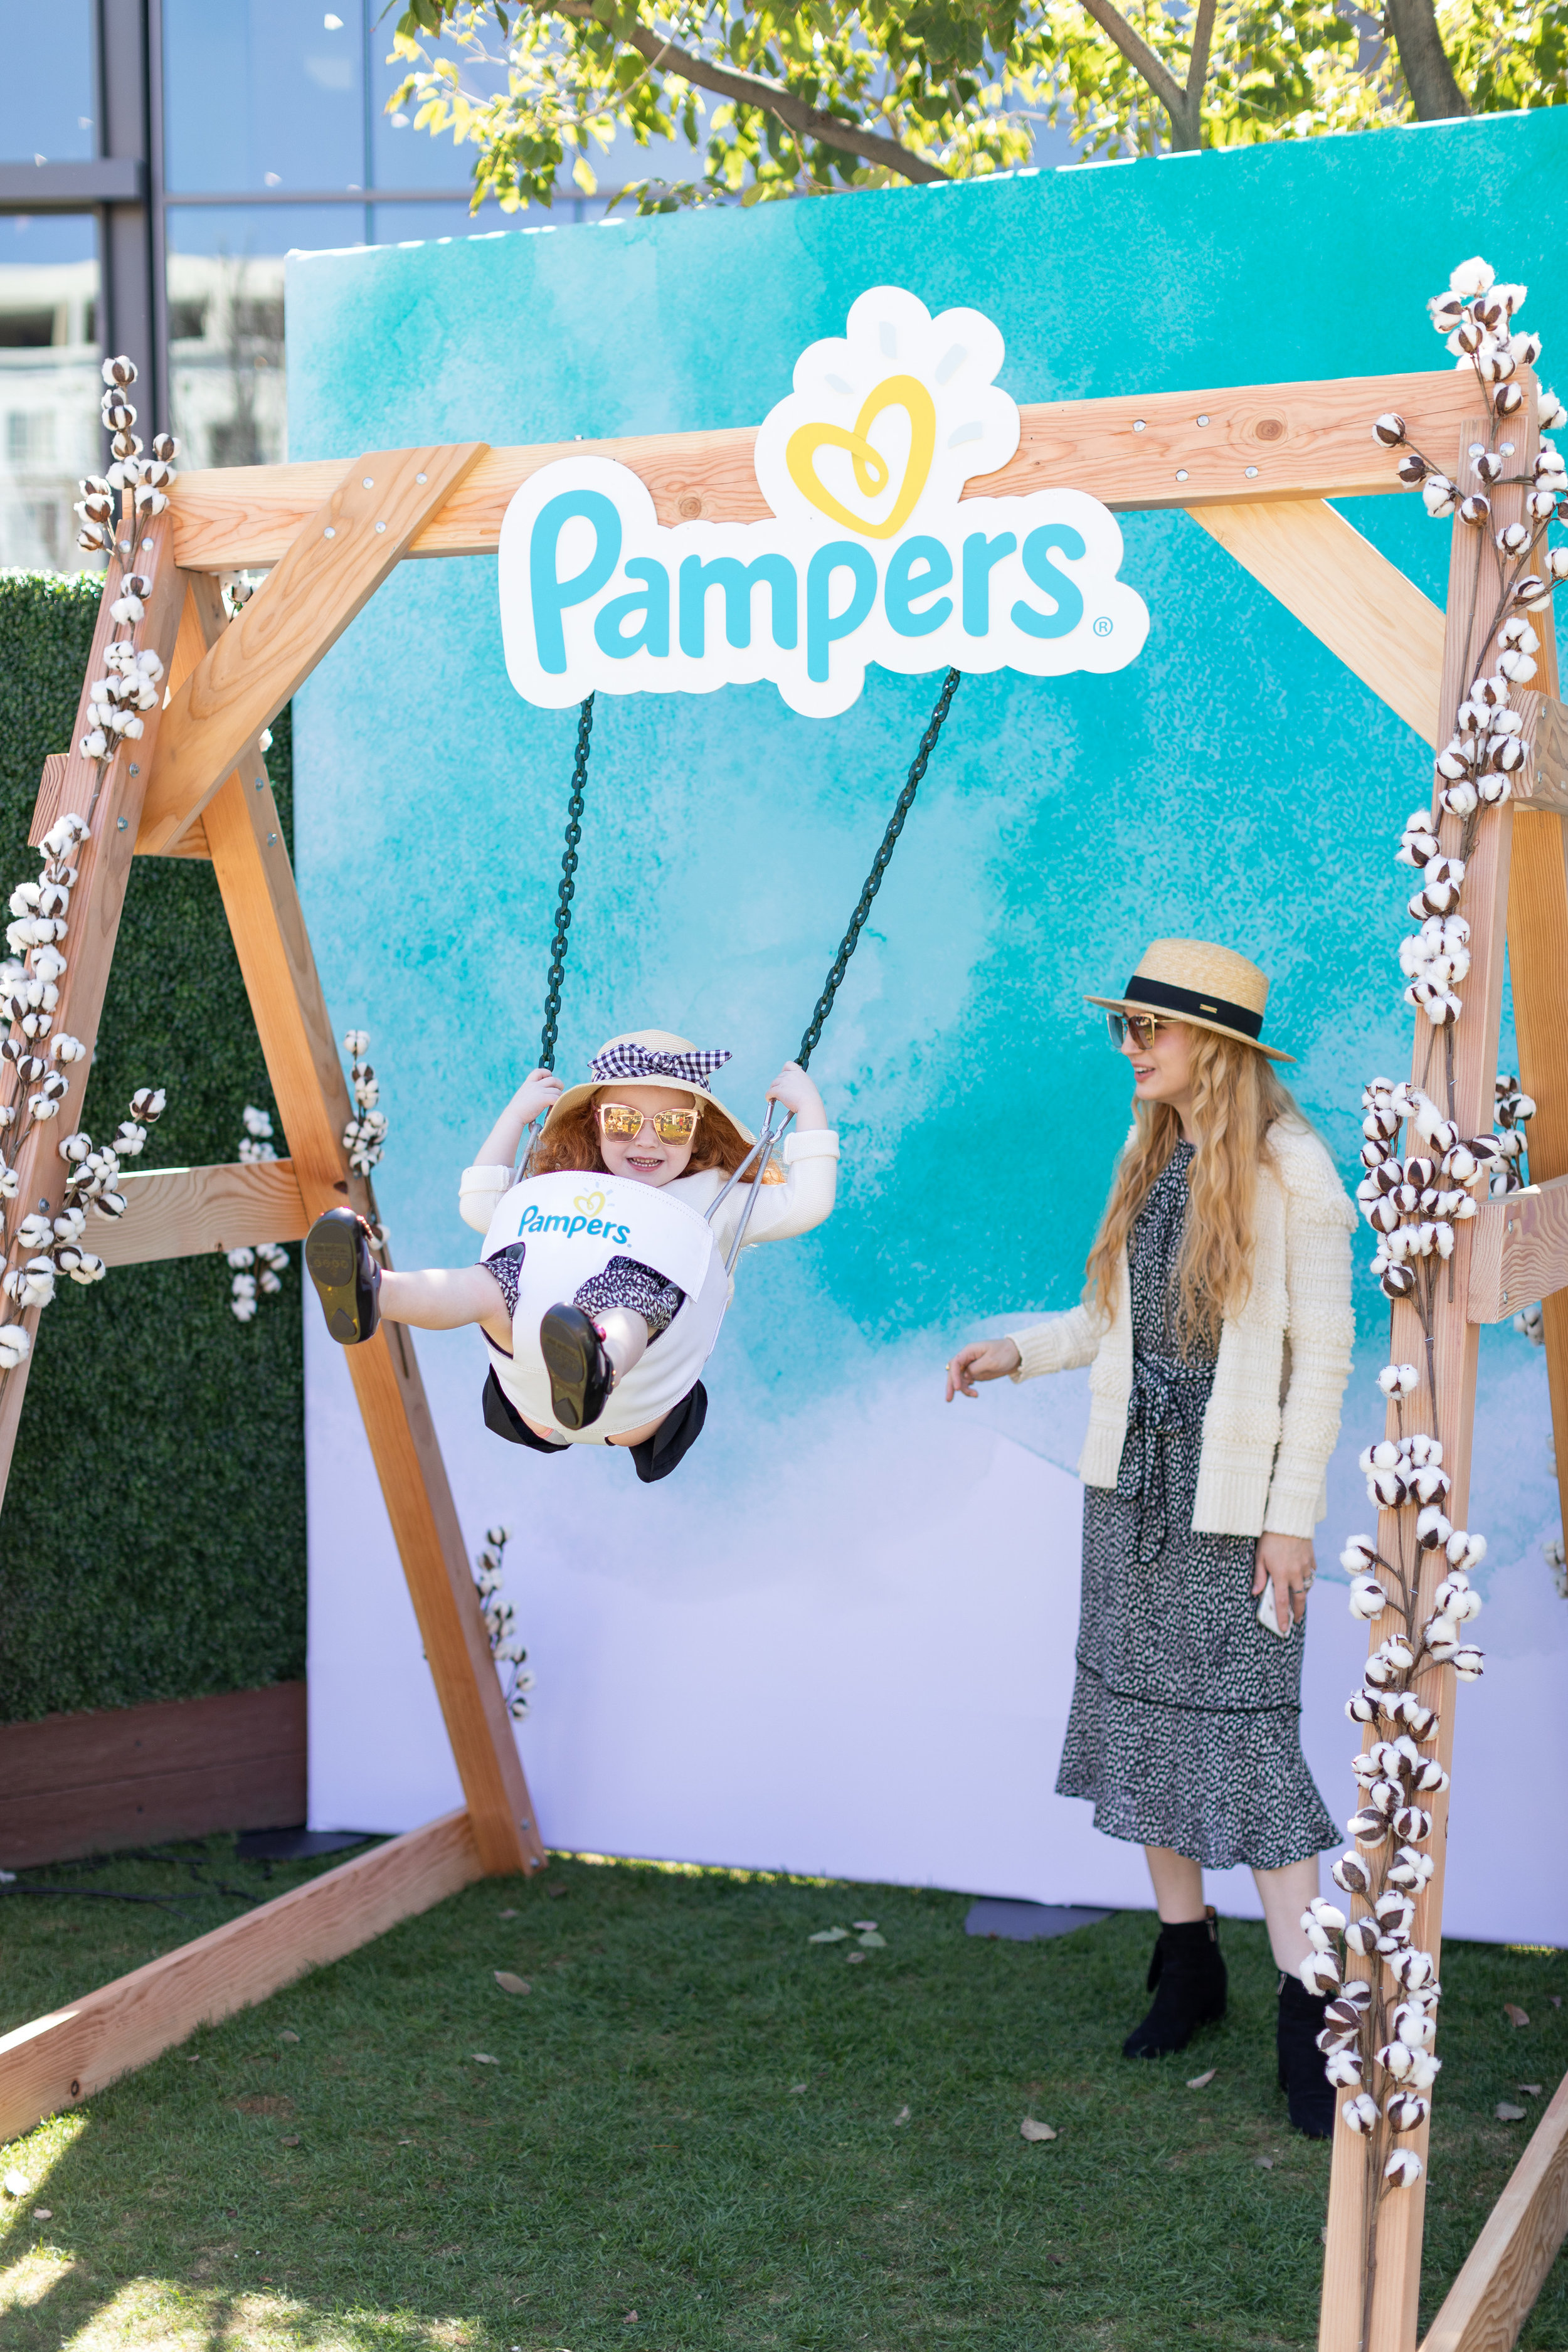 Pampers-Americana-Day1-Lucas-Rossi-001-2.jpg